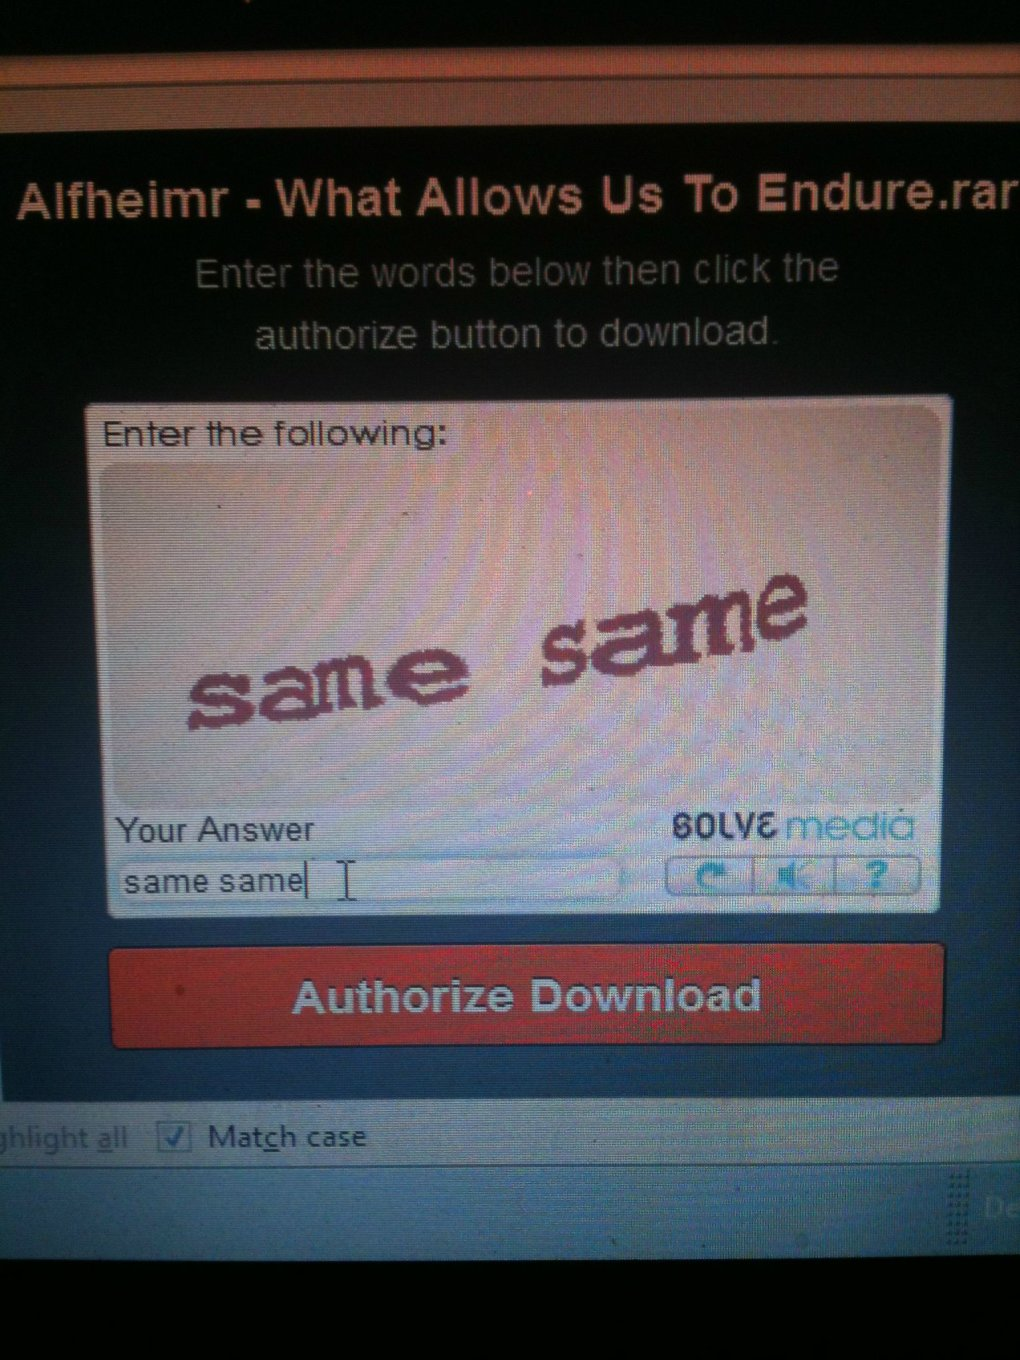 captcha words theame word wordame